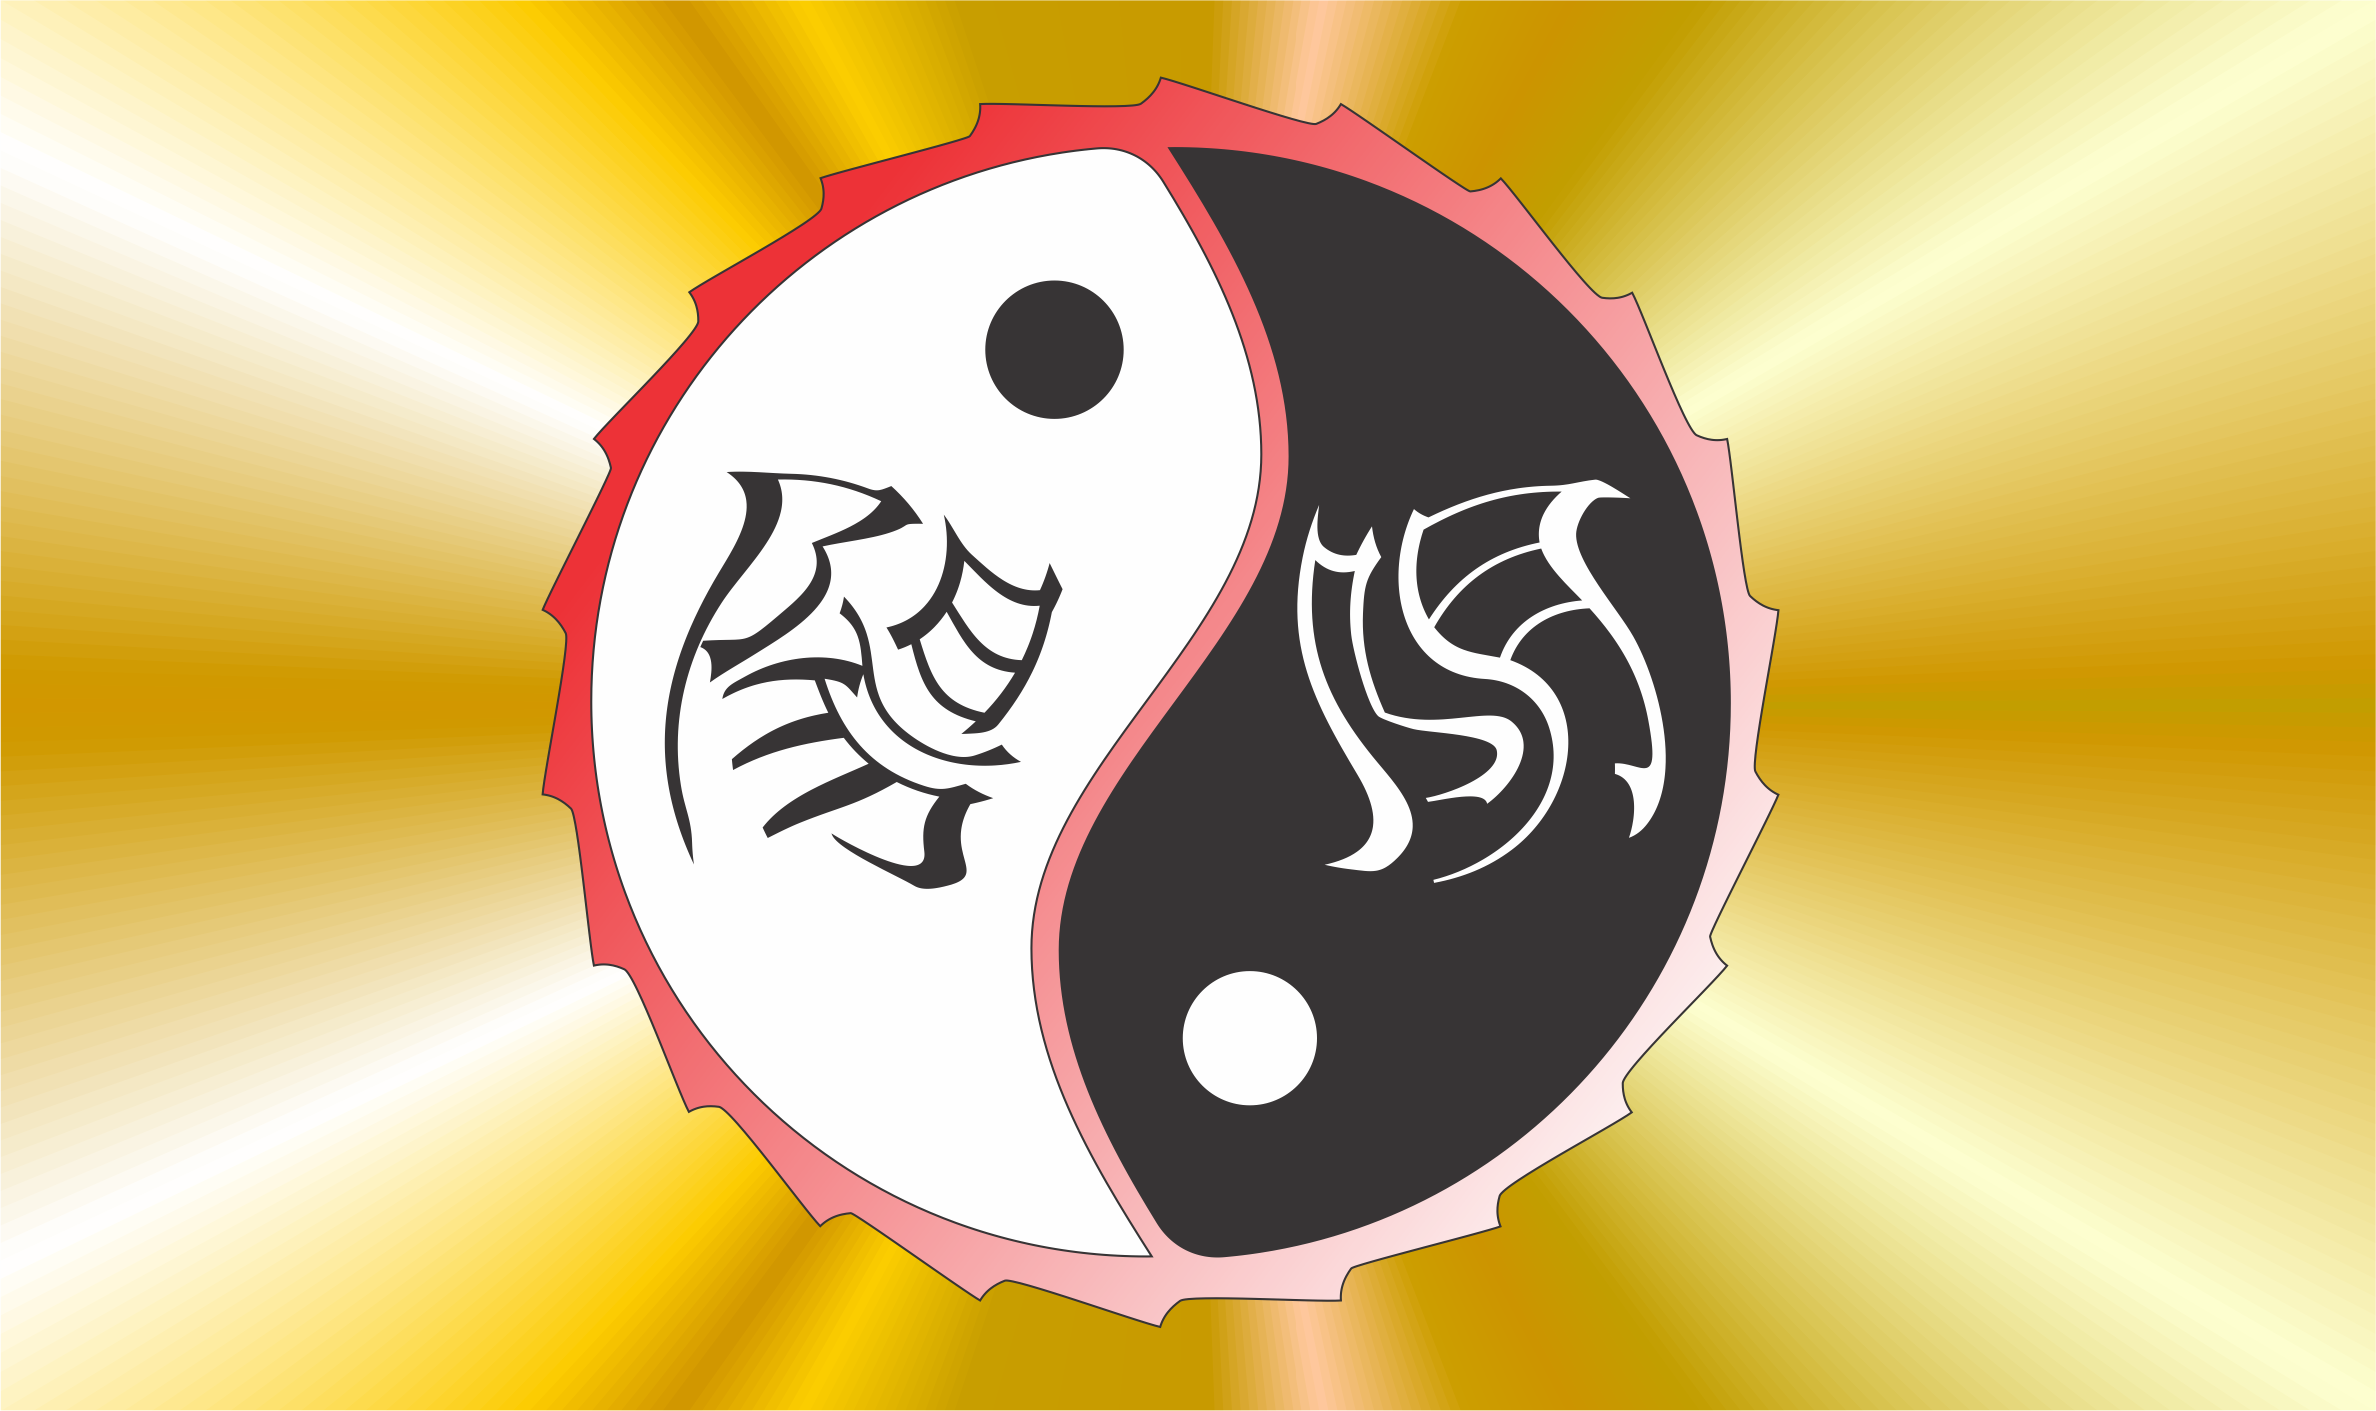 Yin Yang - The Science of Yijing